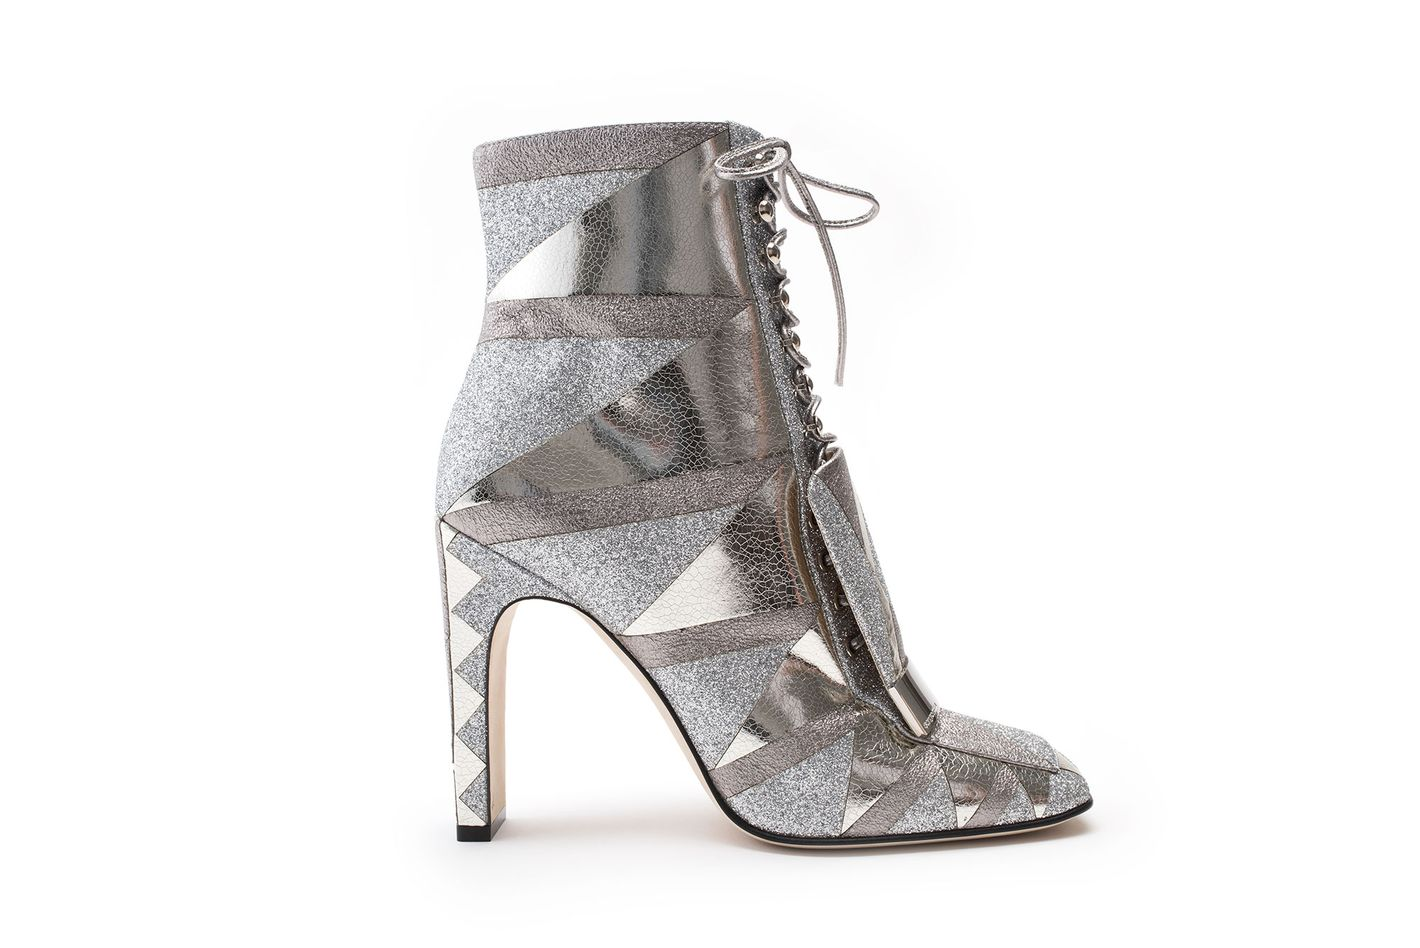 Squared Toe Low Boot in Silver Crackled Lamé Leather